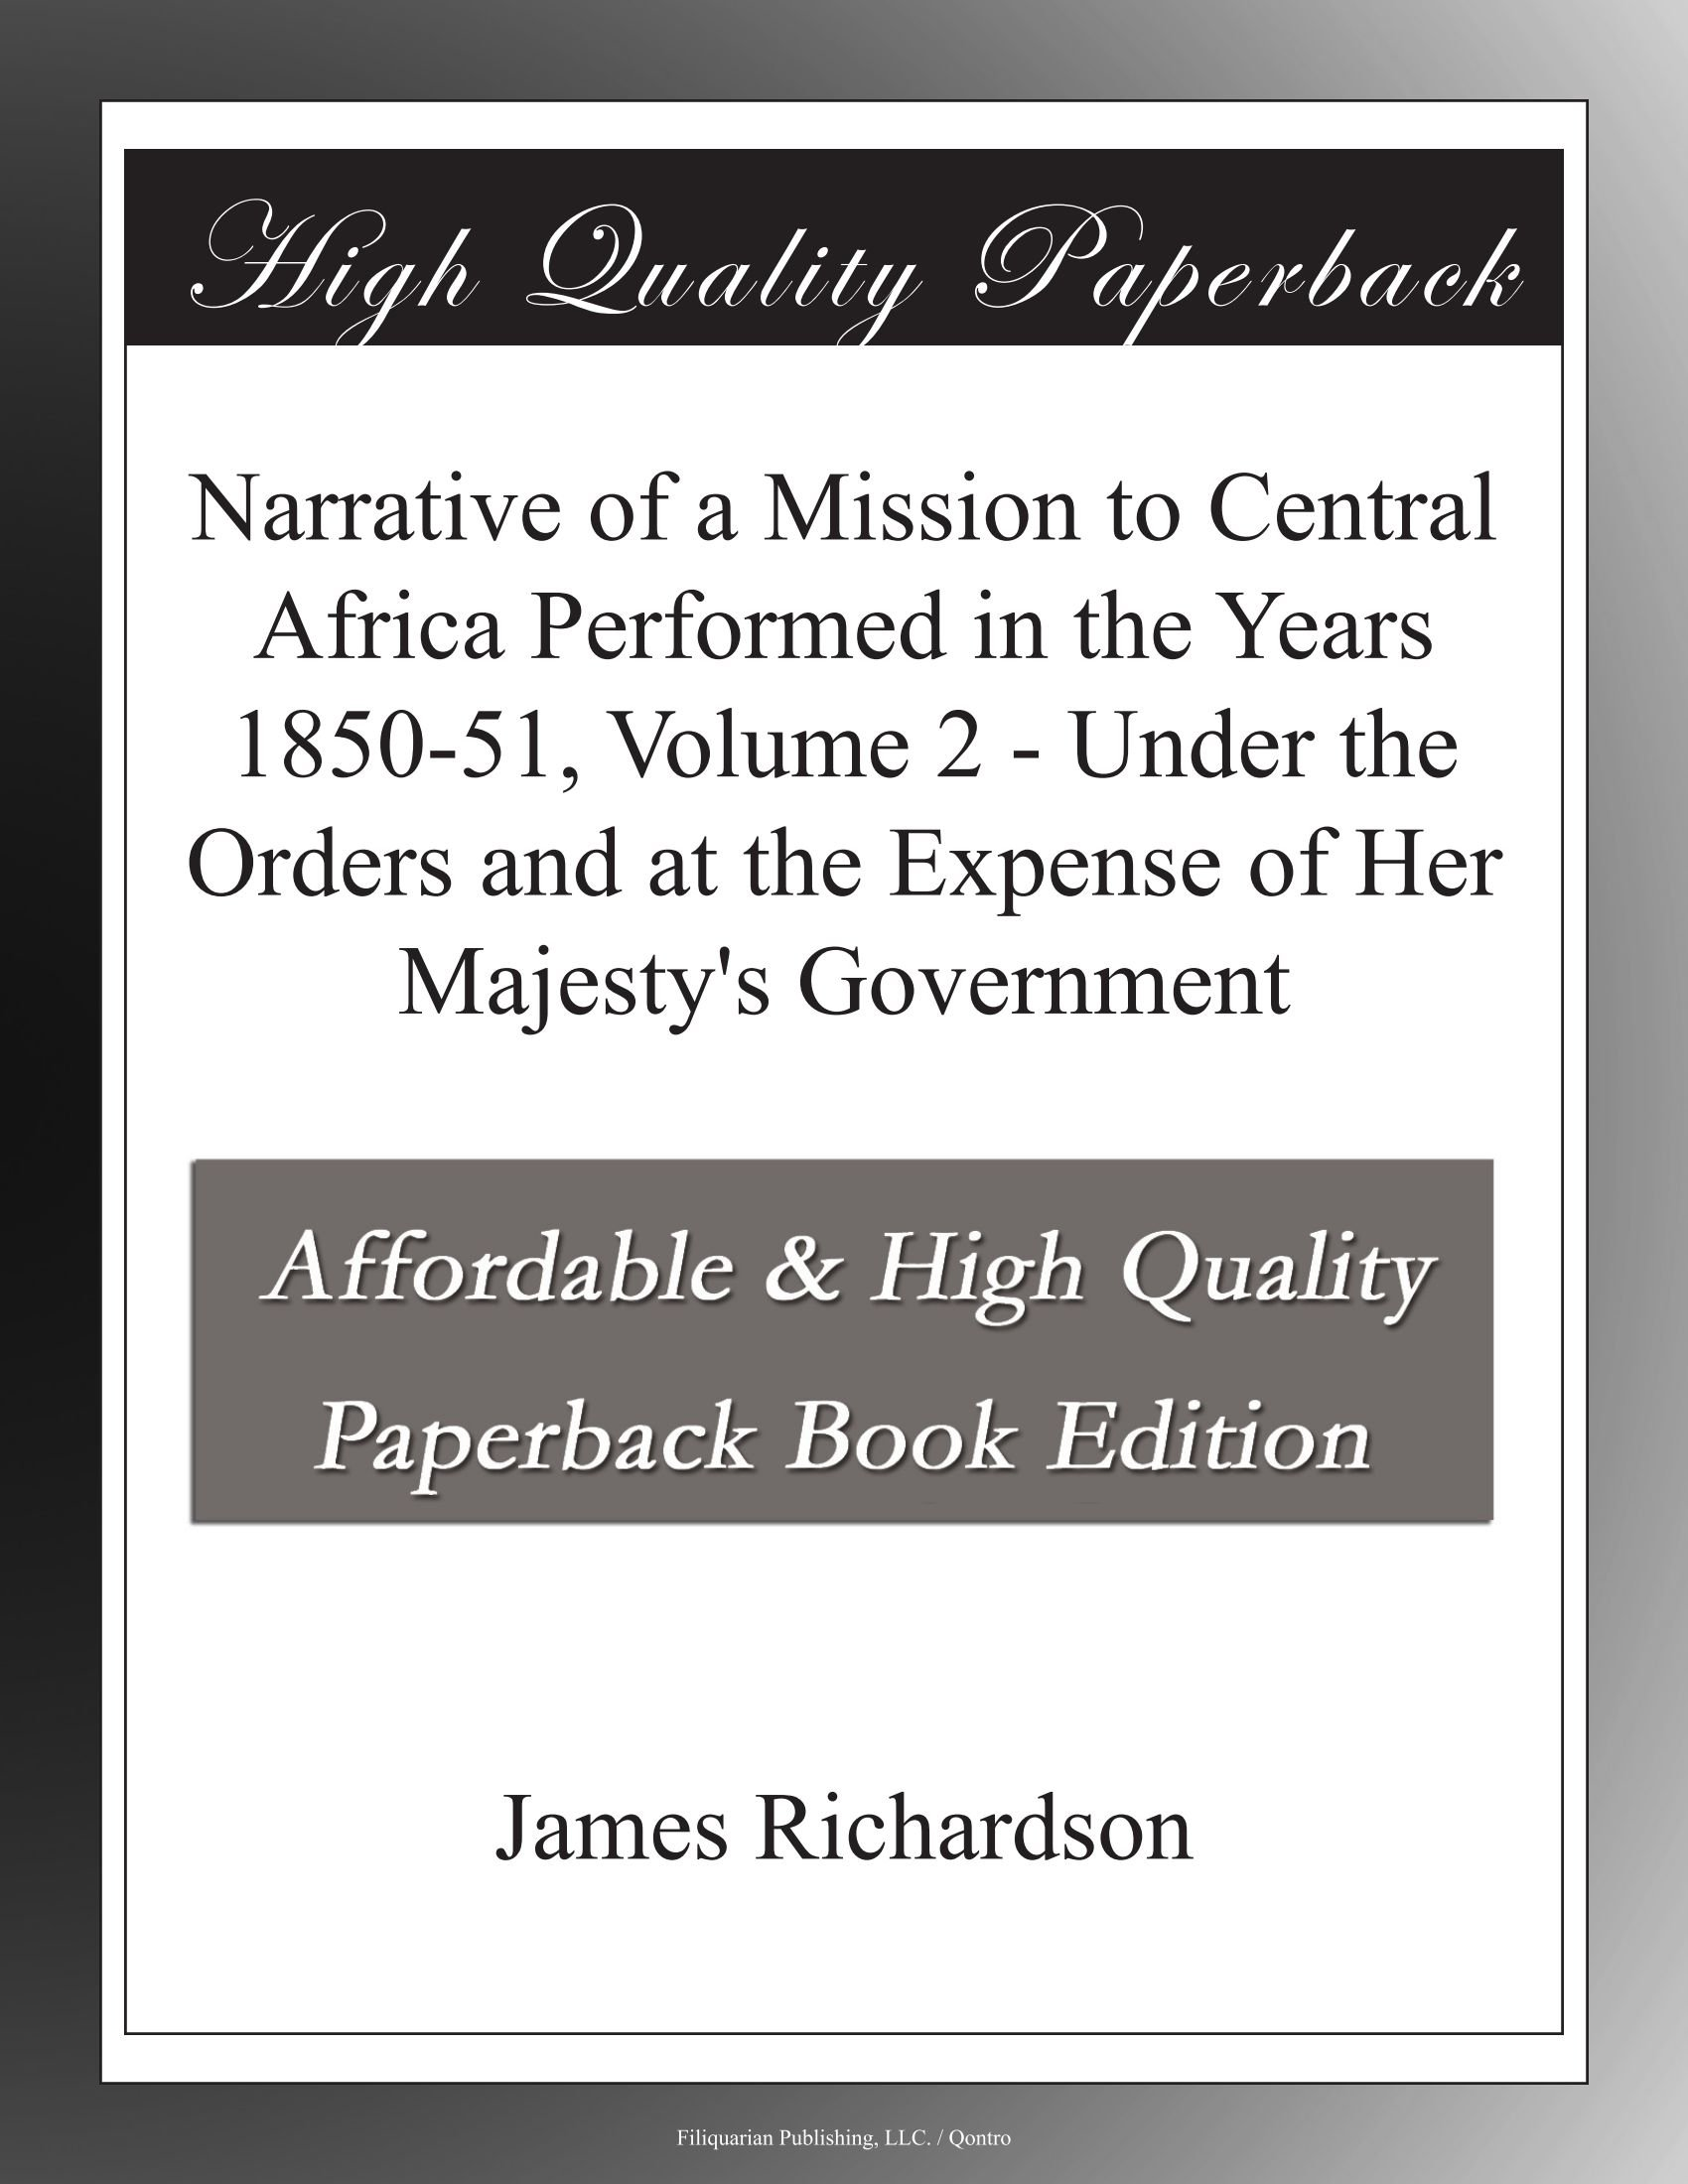 Narrative of a Mission to Central Africa Performed in the Years 1850-51, Volume 2 - Under the Orders and at the Expense of Her Majesty's Government PDF